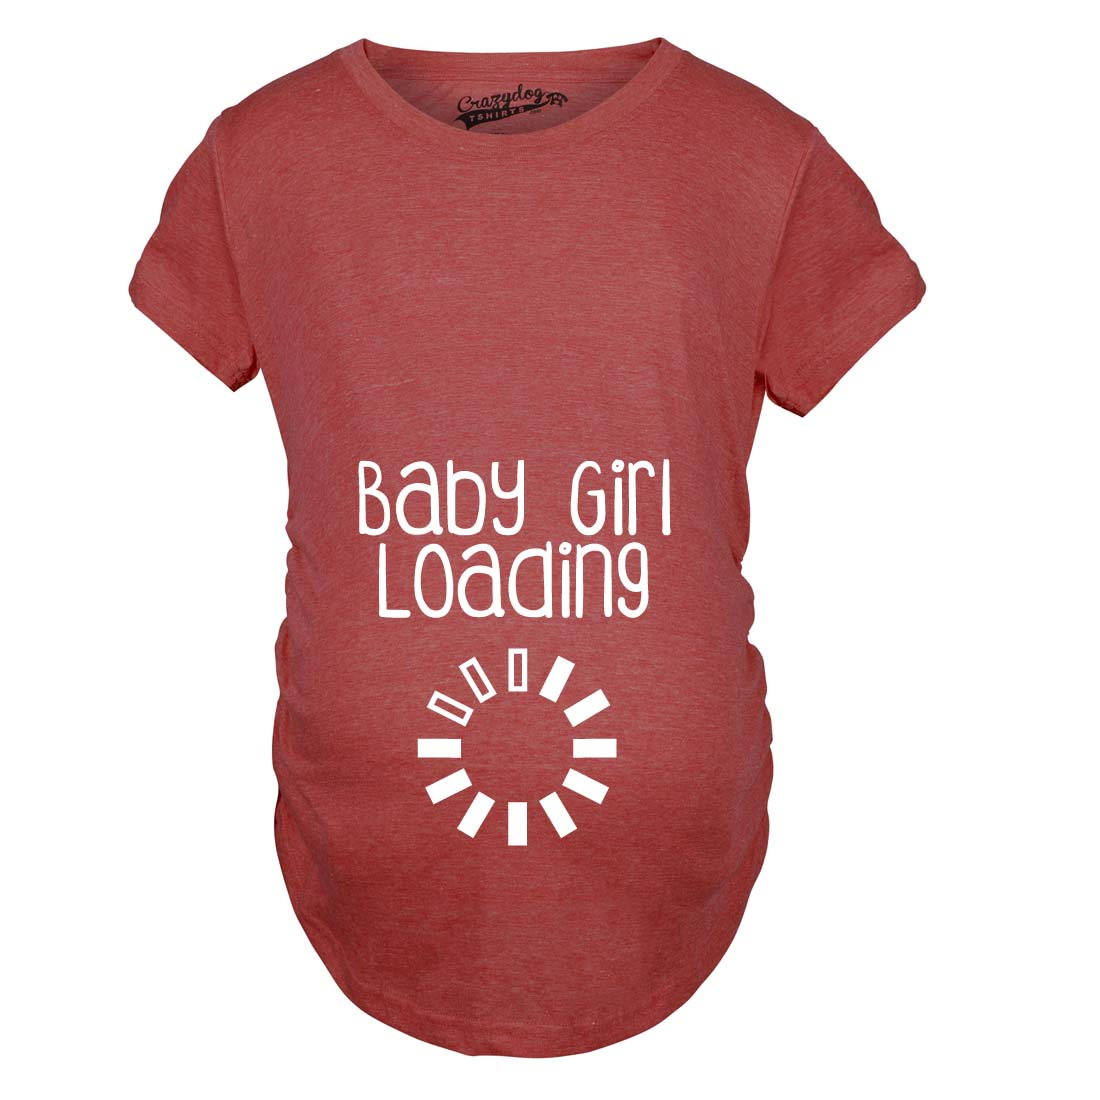 Maternity Baby Girl Loading Funny Pregnancy Announcement Baby Bump – T Shirt Baby Announcement